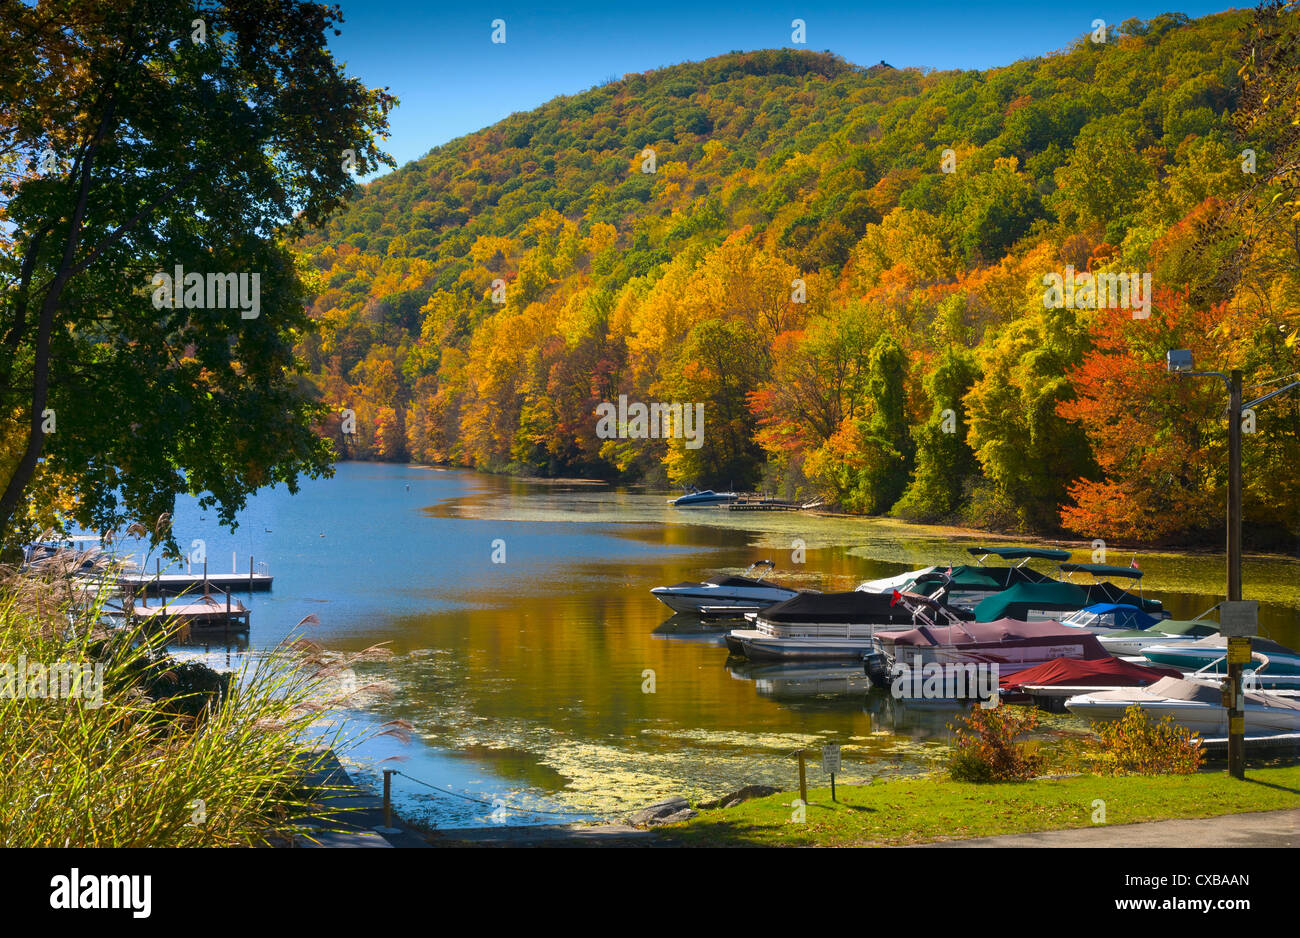 Lake Candlewood, Connecticut, New England, United States of America, North America - Stock Image